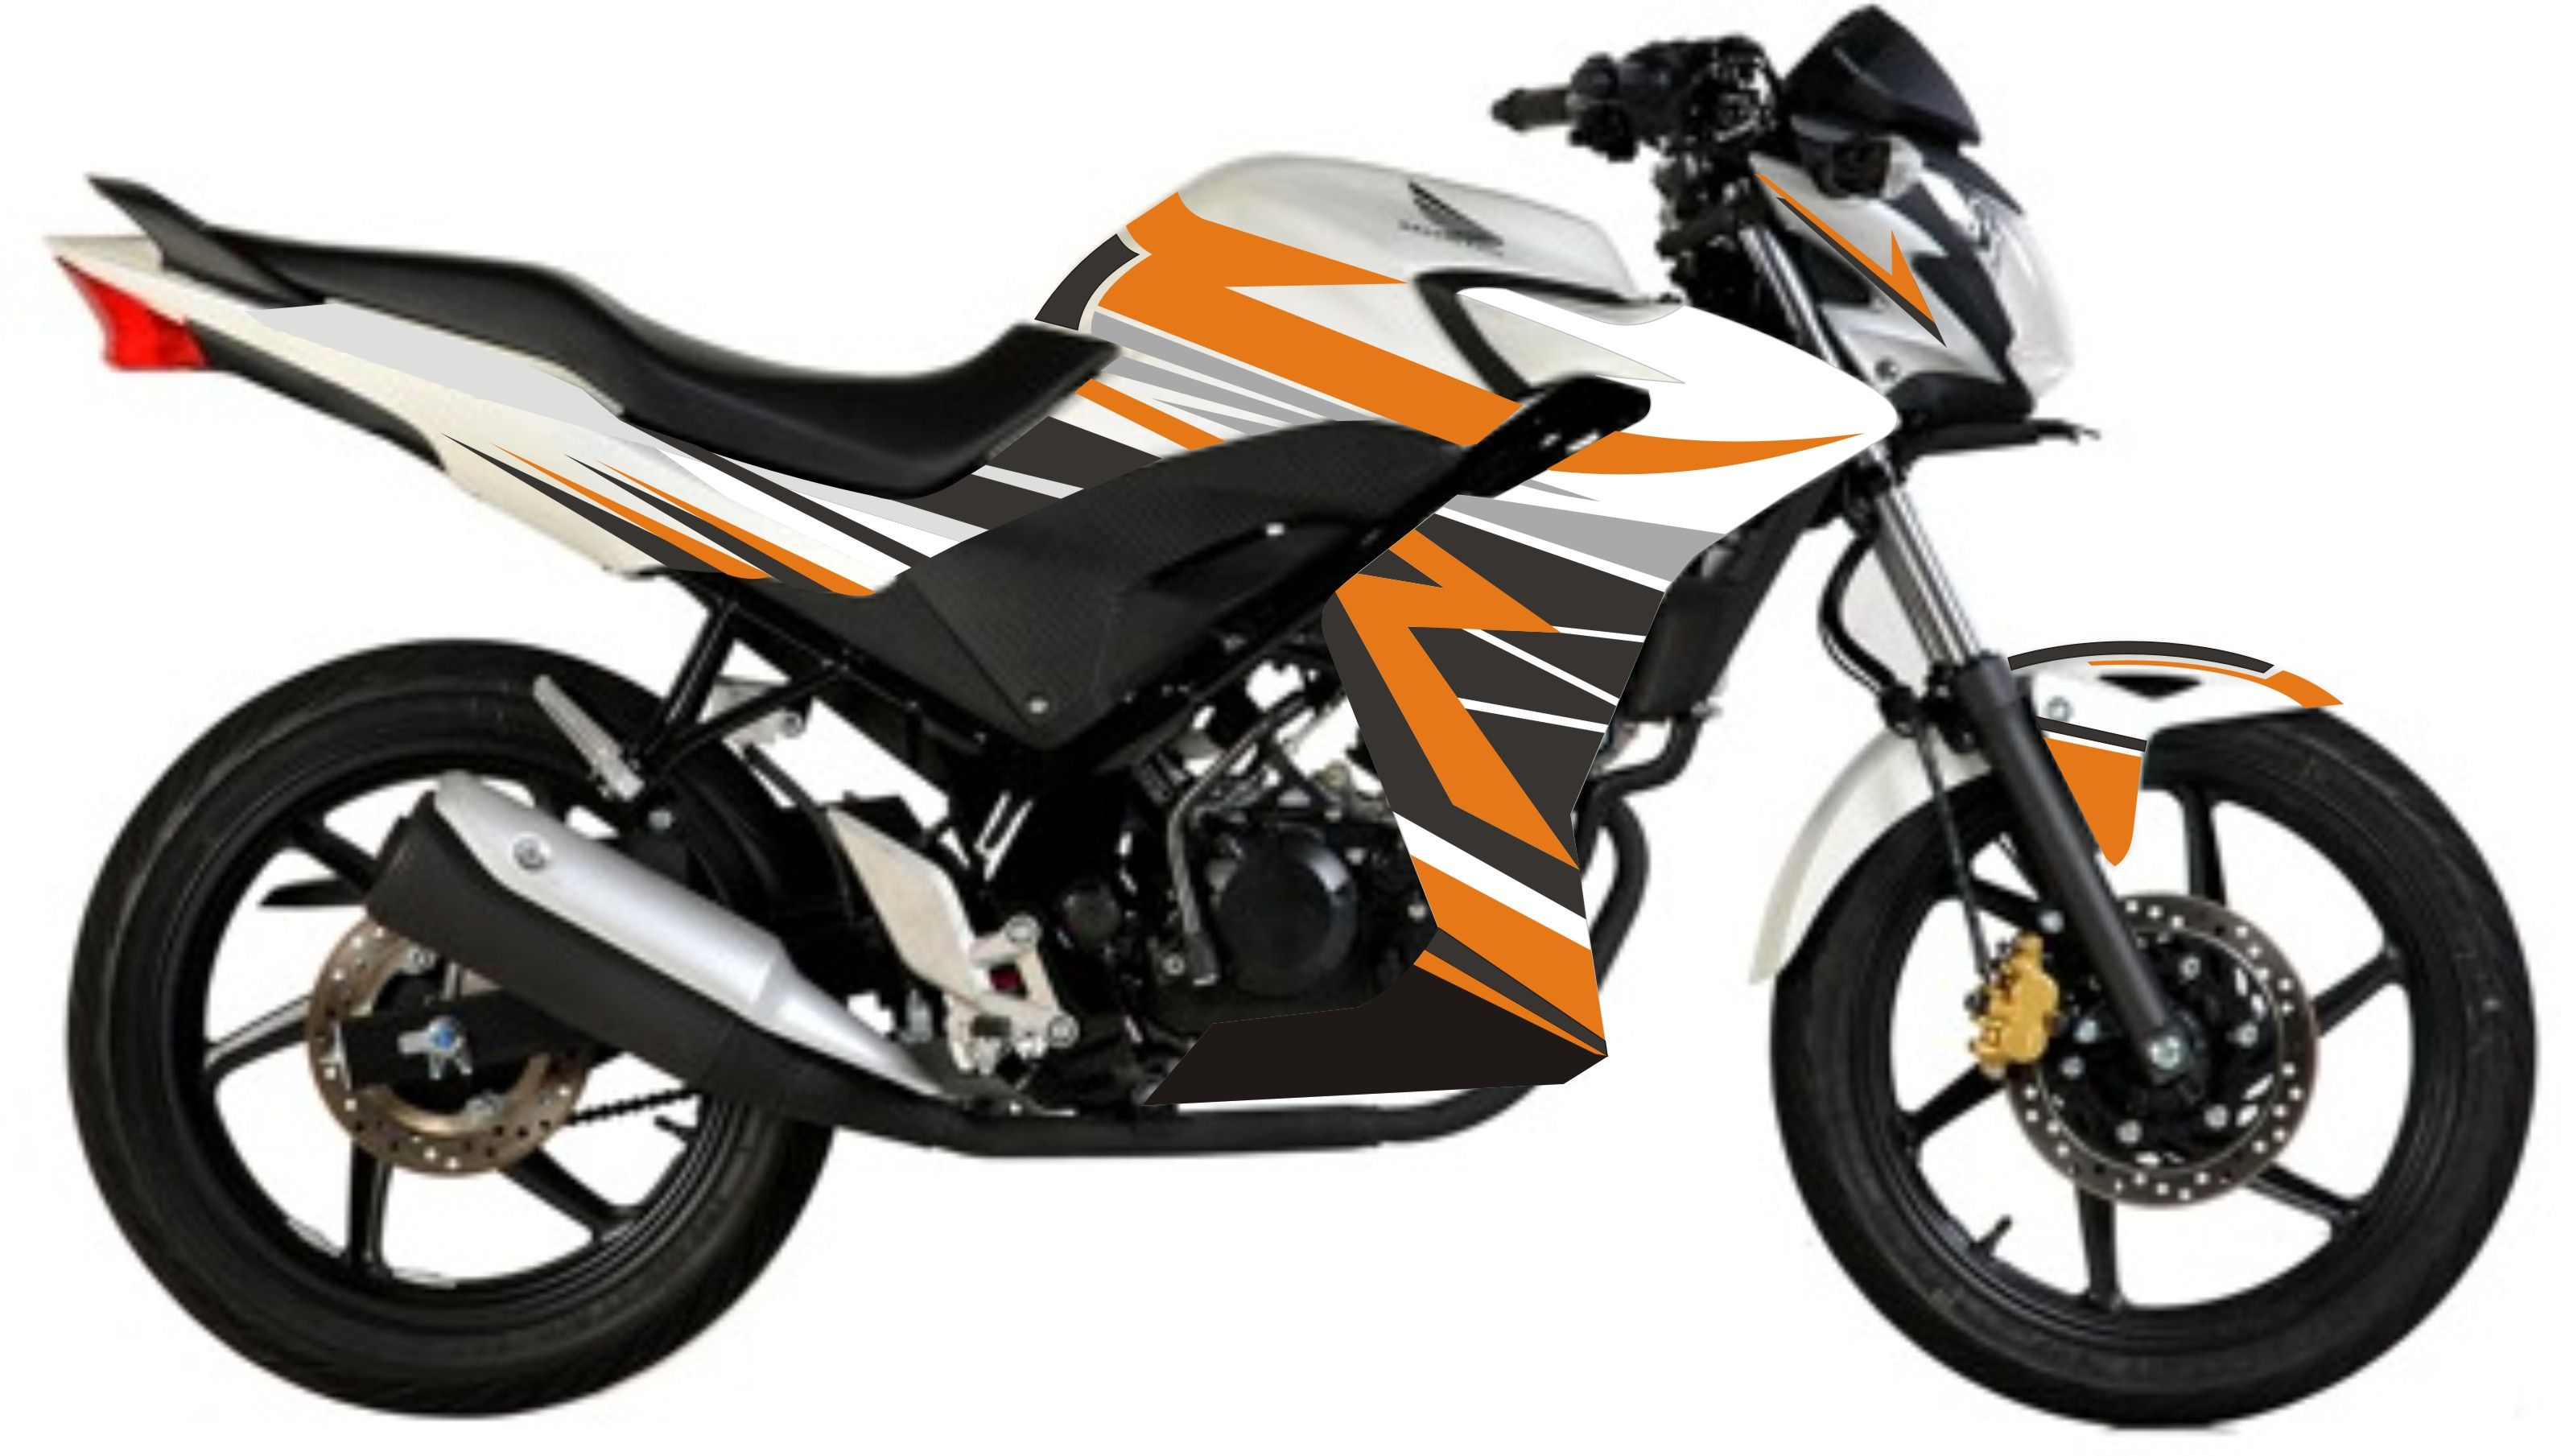 Honda CBR Orange Grey Striping Motos Pinterest Orange - Bridgestone custom stickers motorcycle